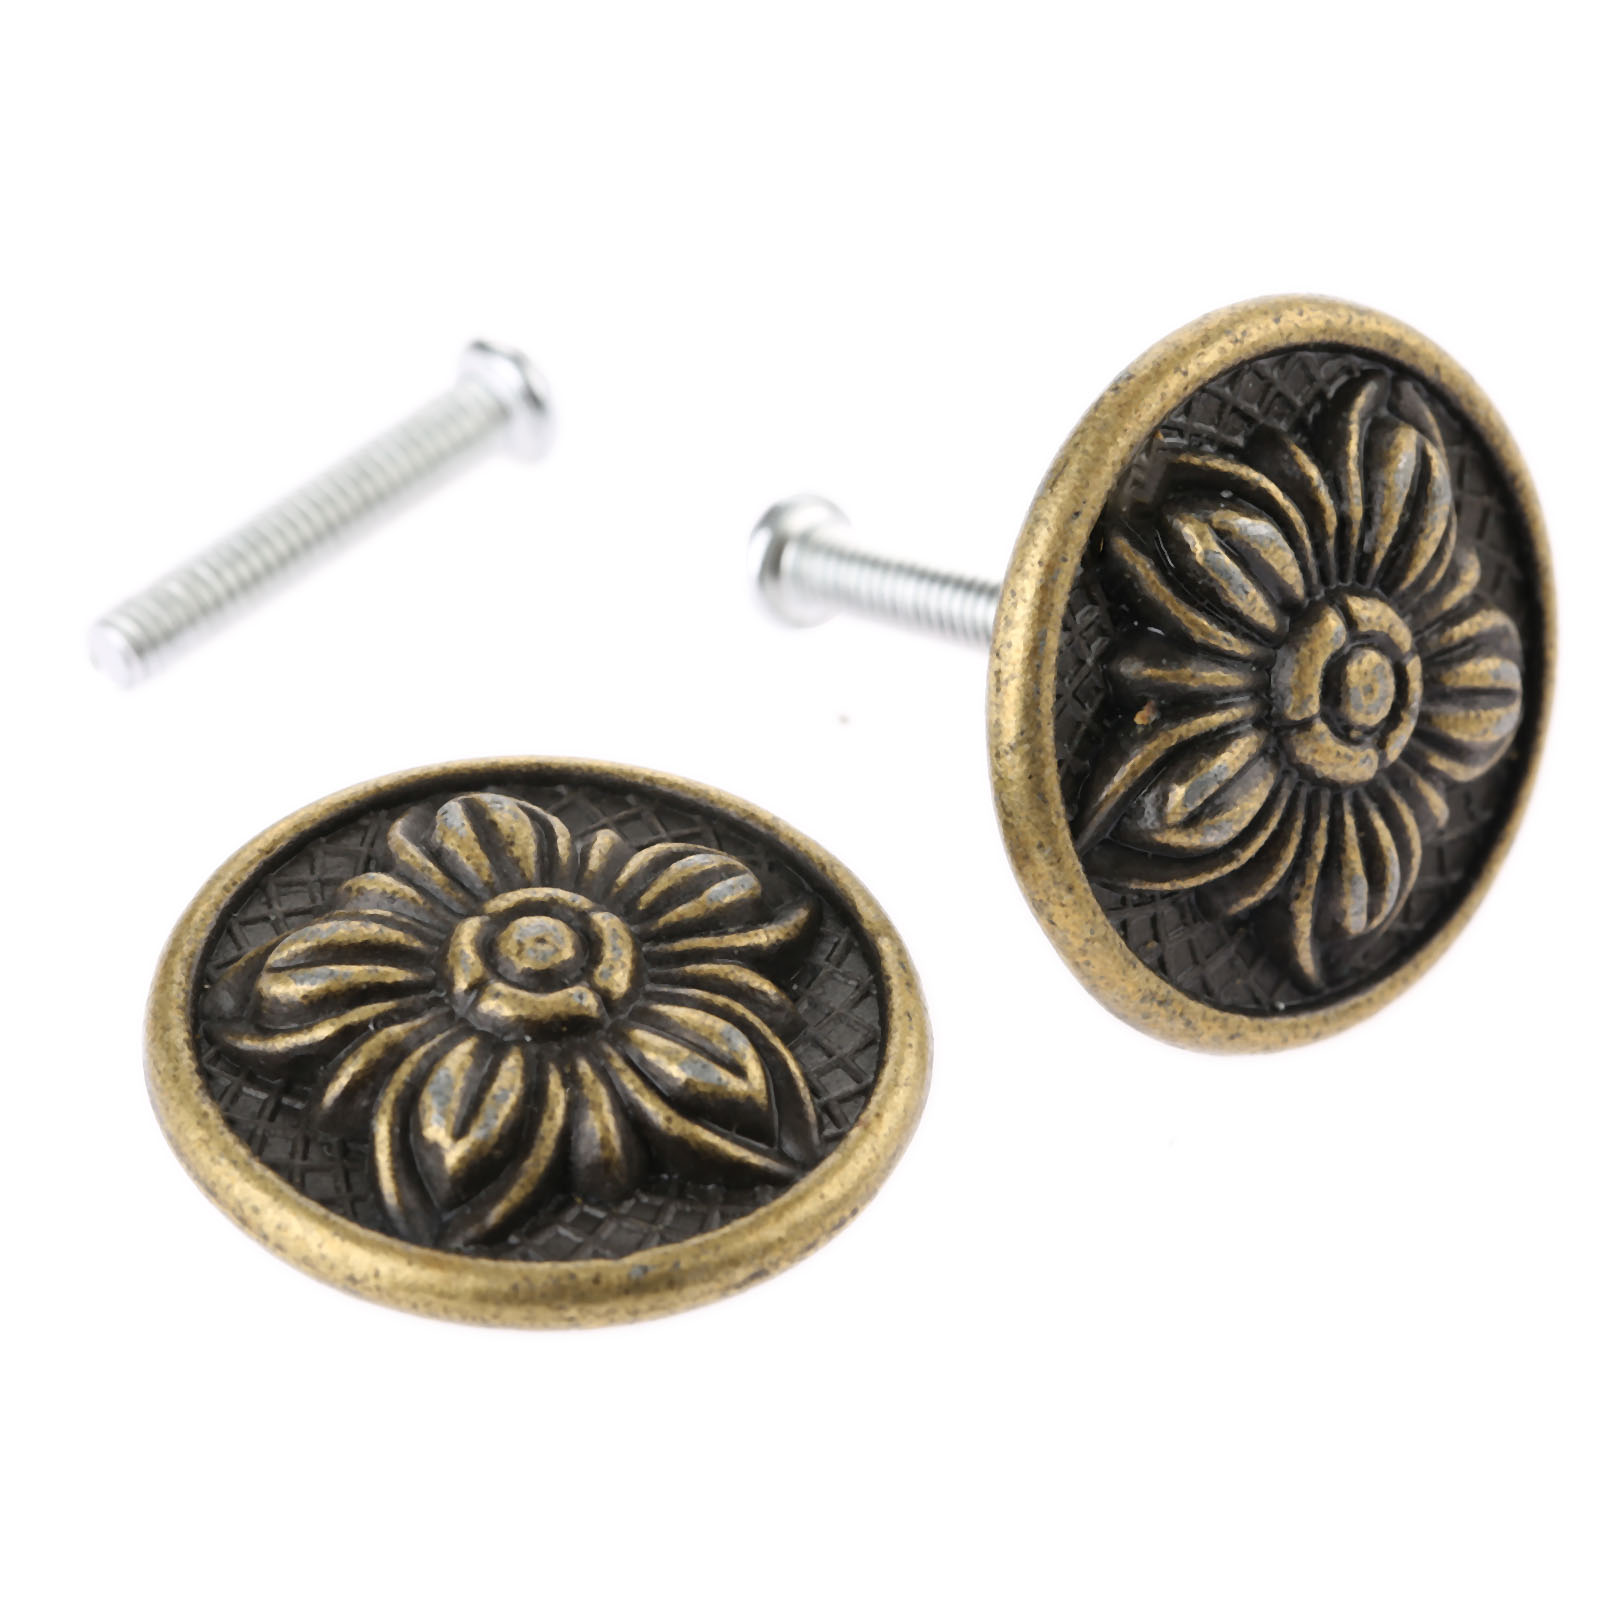 Jewellery Cupboard Aliexpress Buy 2pcs Antique Furniture Handle Round